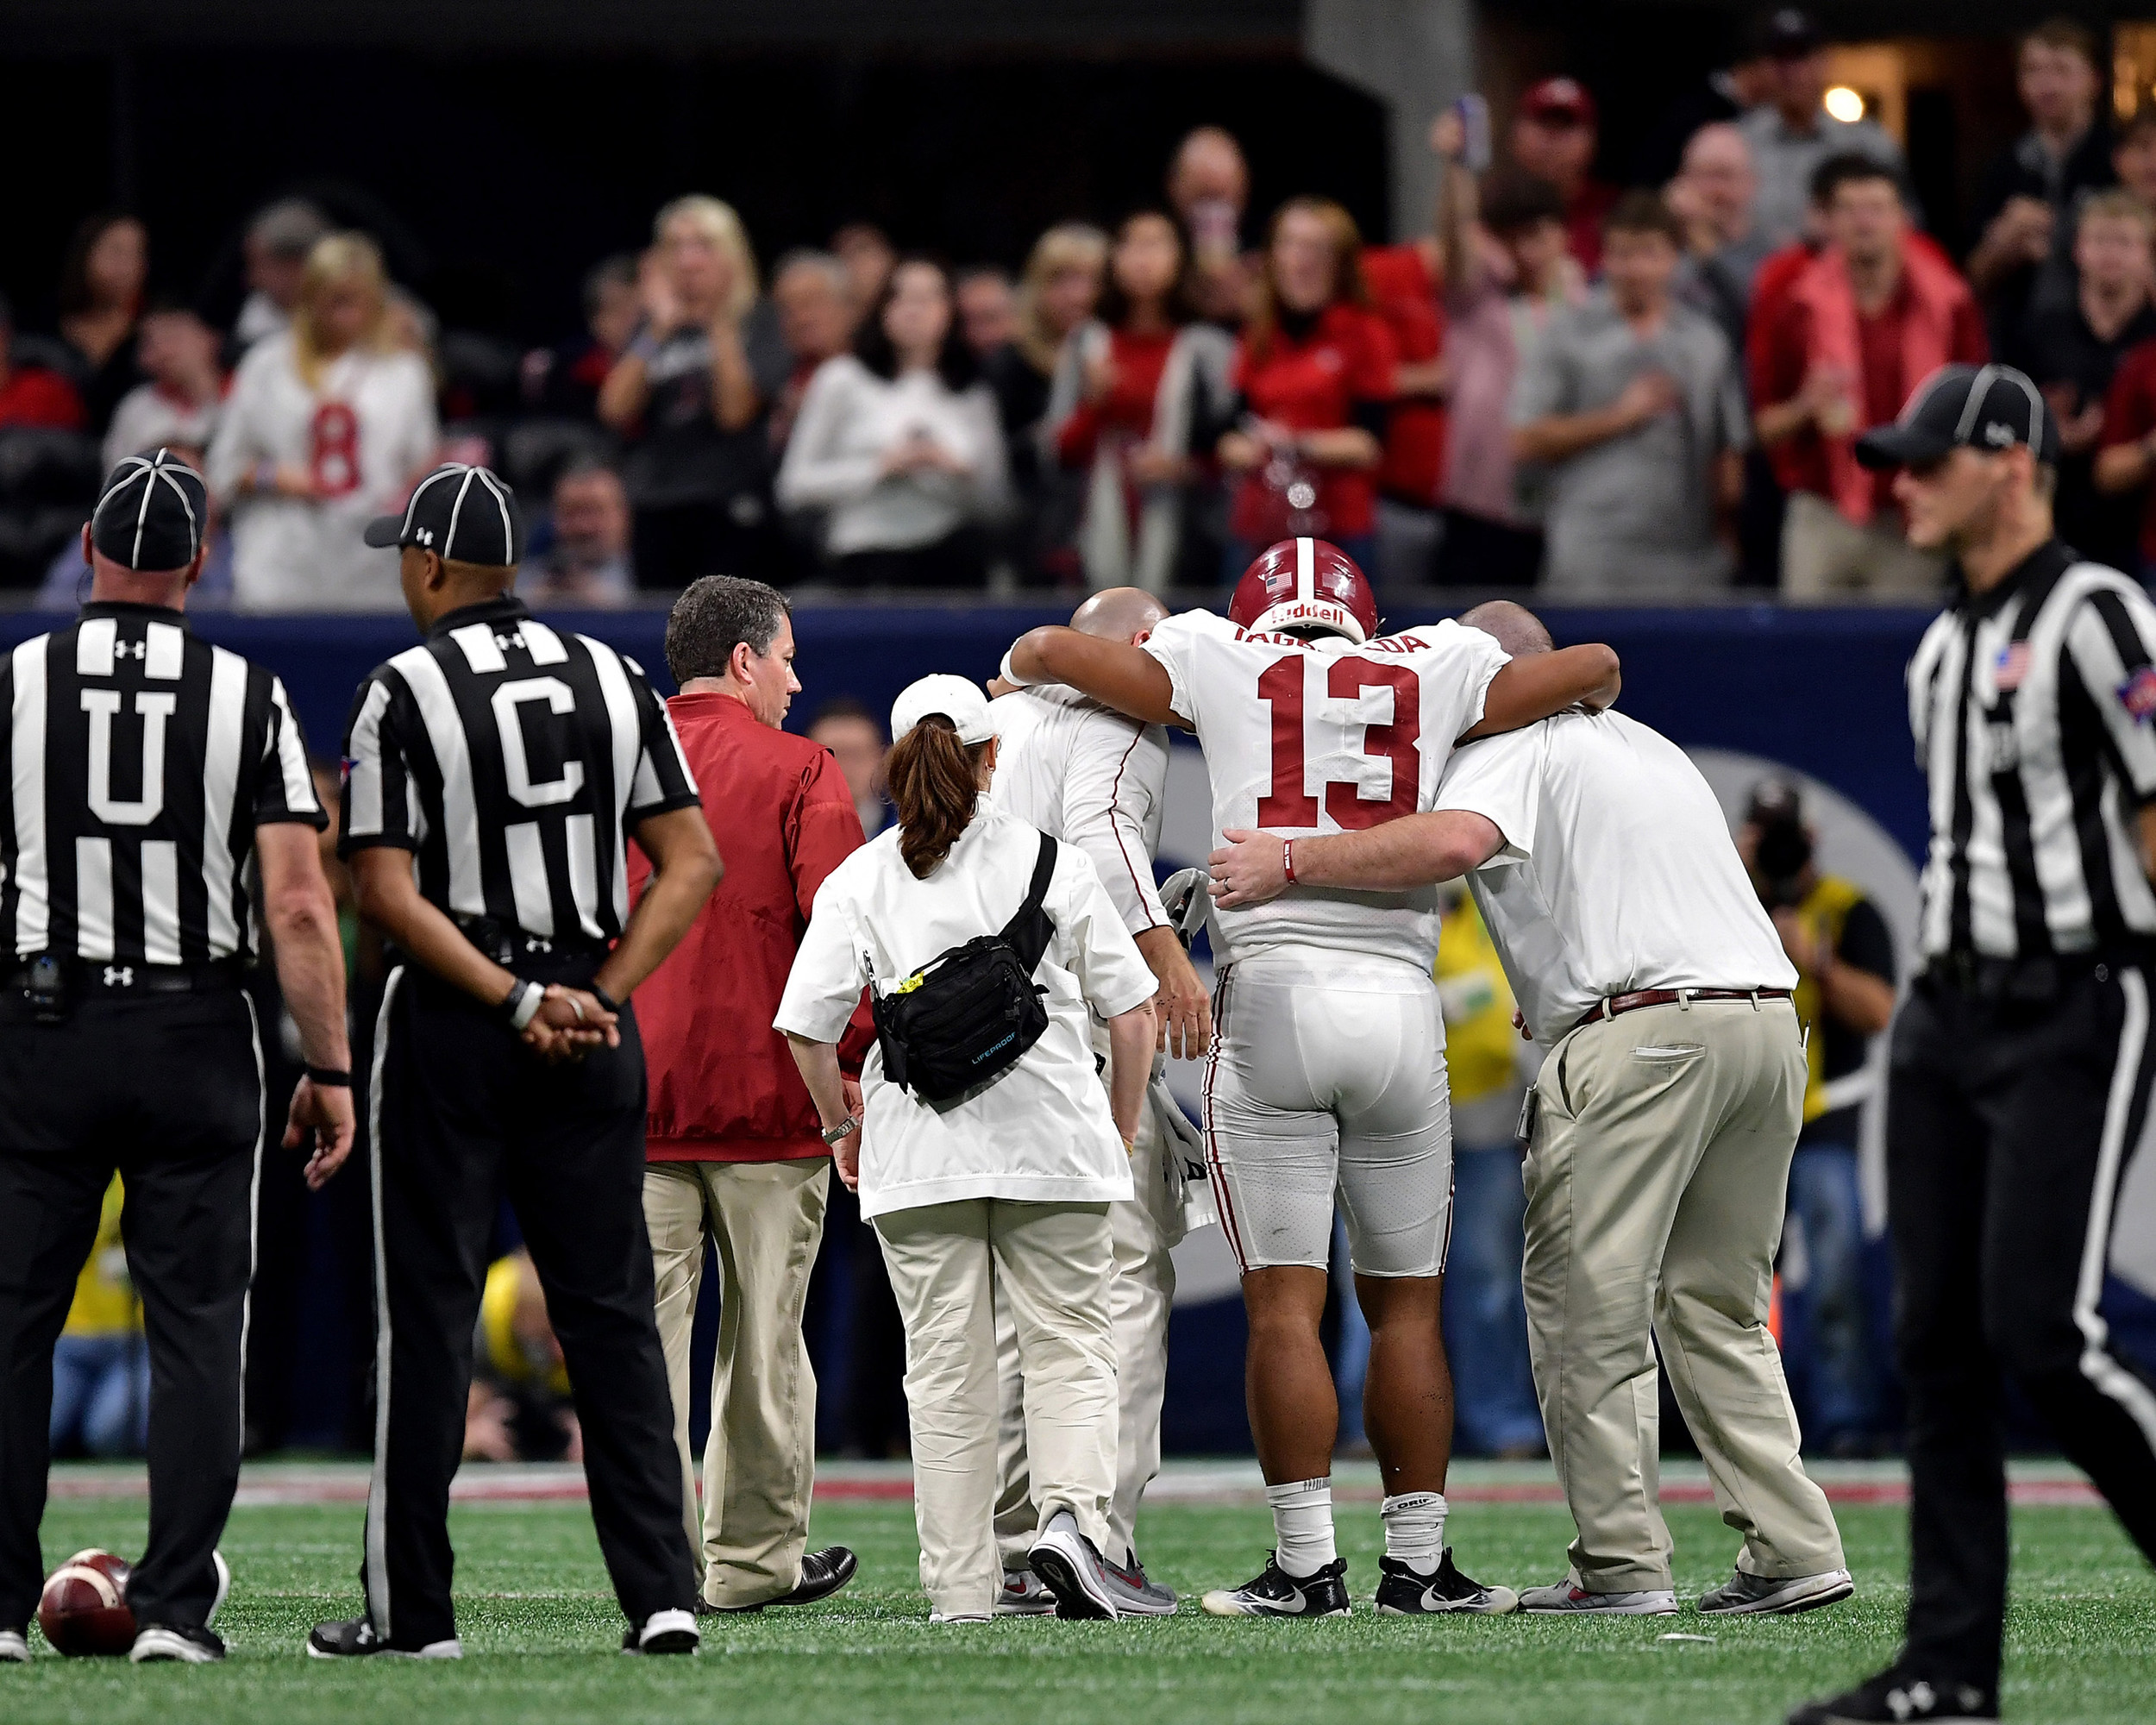 Alabama Crimson Tide quarterback Tua Tagovailoa (13) leaves the game with an ankle injury during the fourth quarter of the 2018 SEC Championship football game against the Georgia Bulldogs at Mercedes-Benz Stadium in Atlanta, Ga., on Dec. 1, 2018. Alabama wins 35-28. (Photo by Lee Walls)